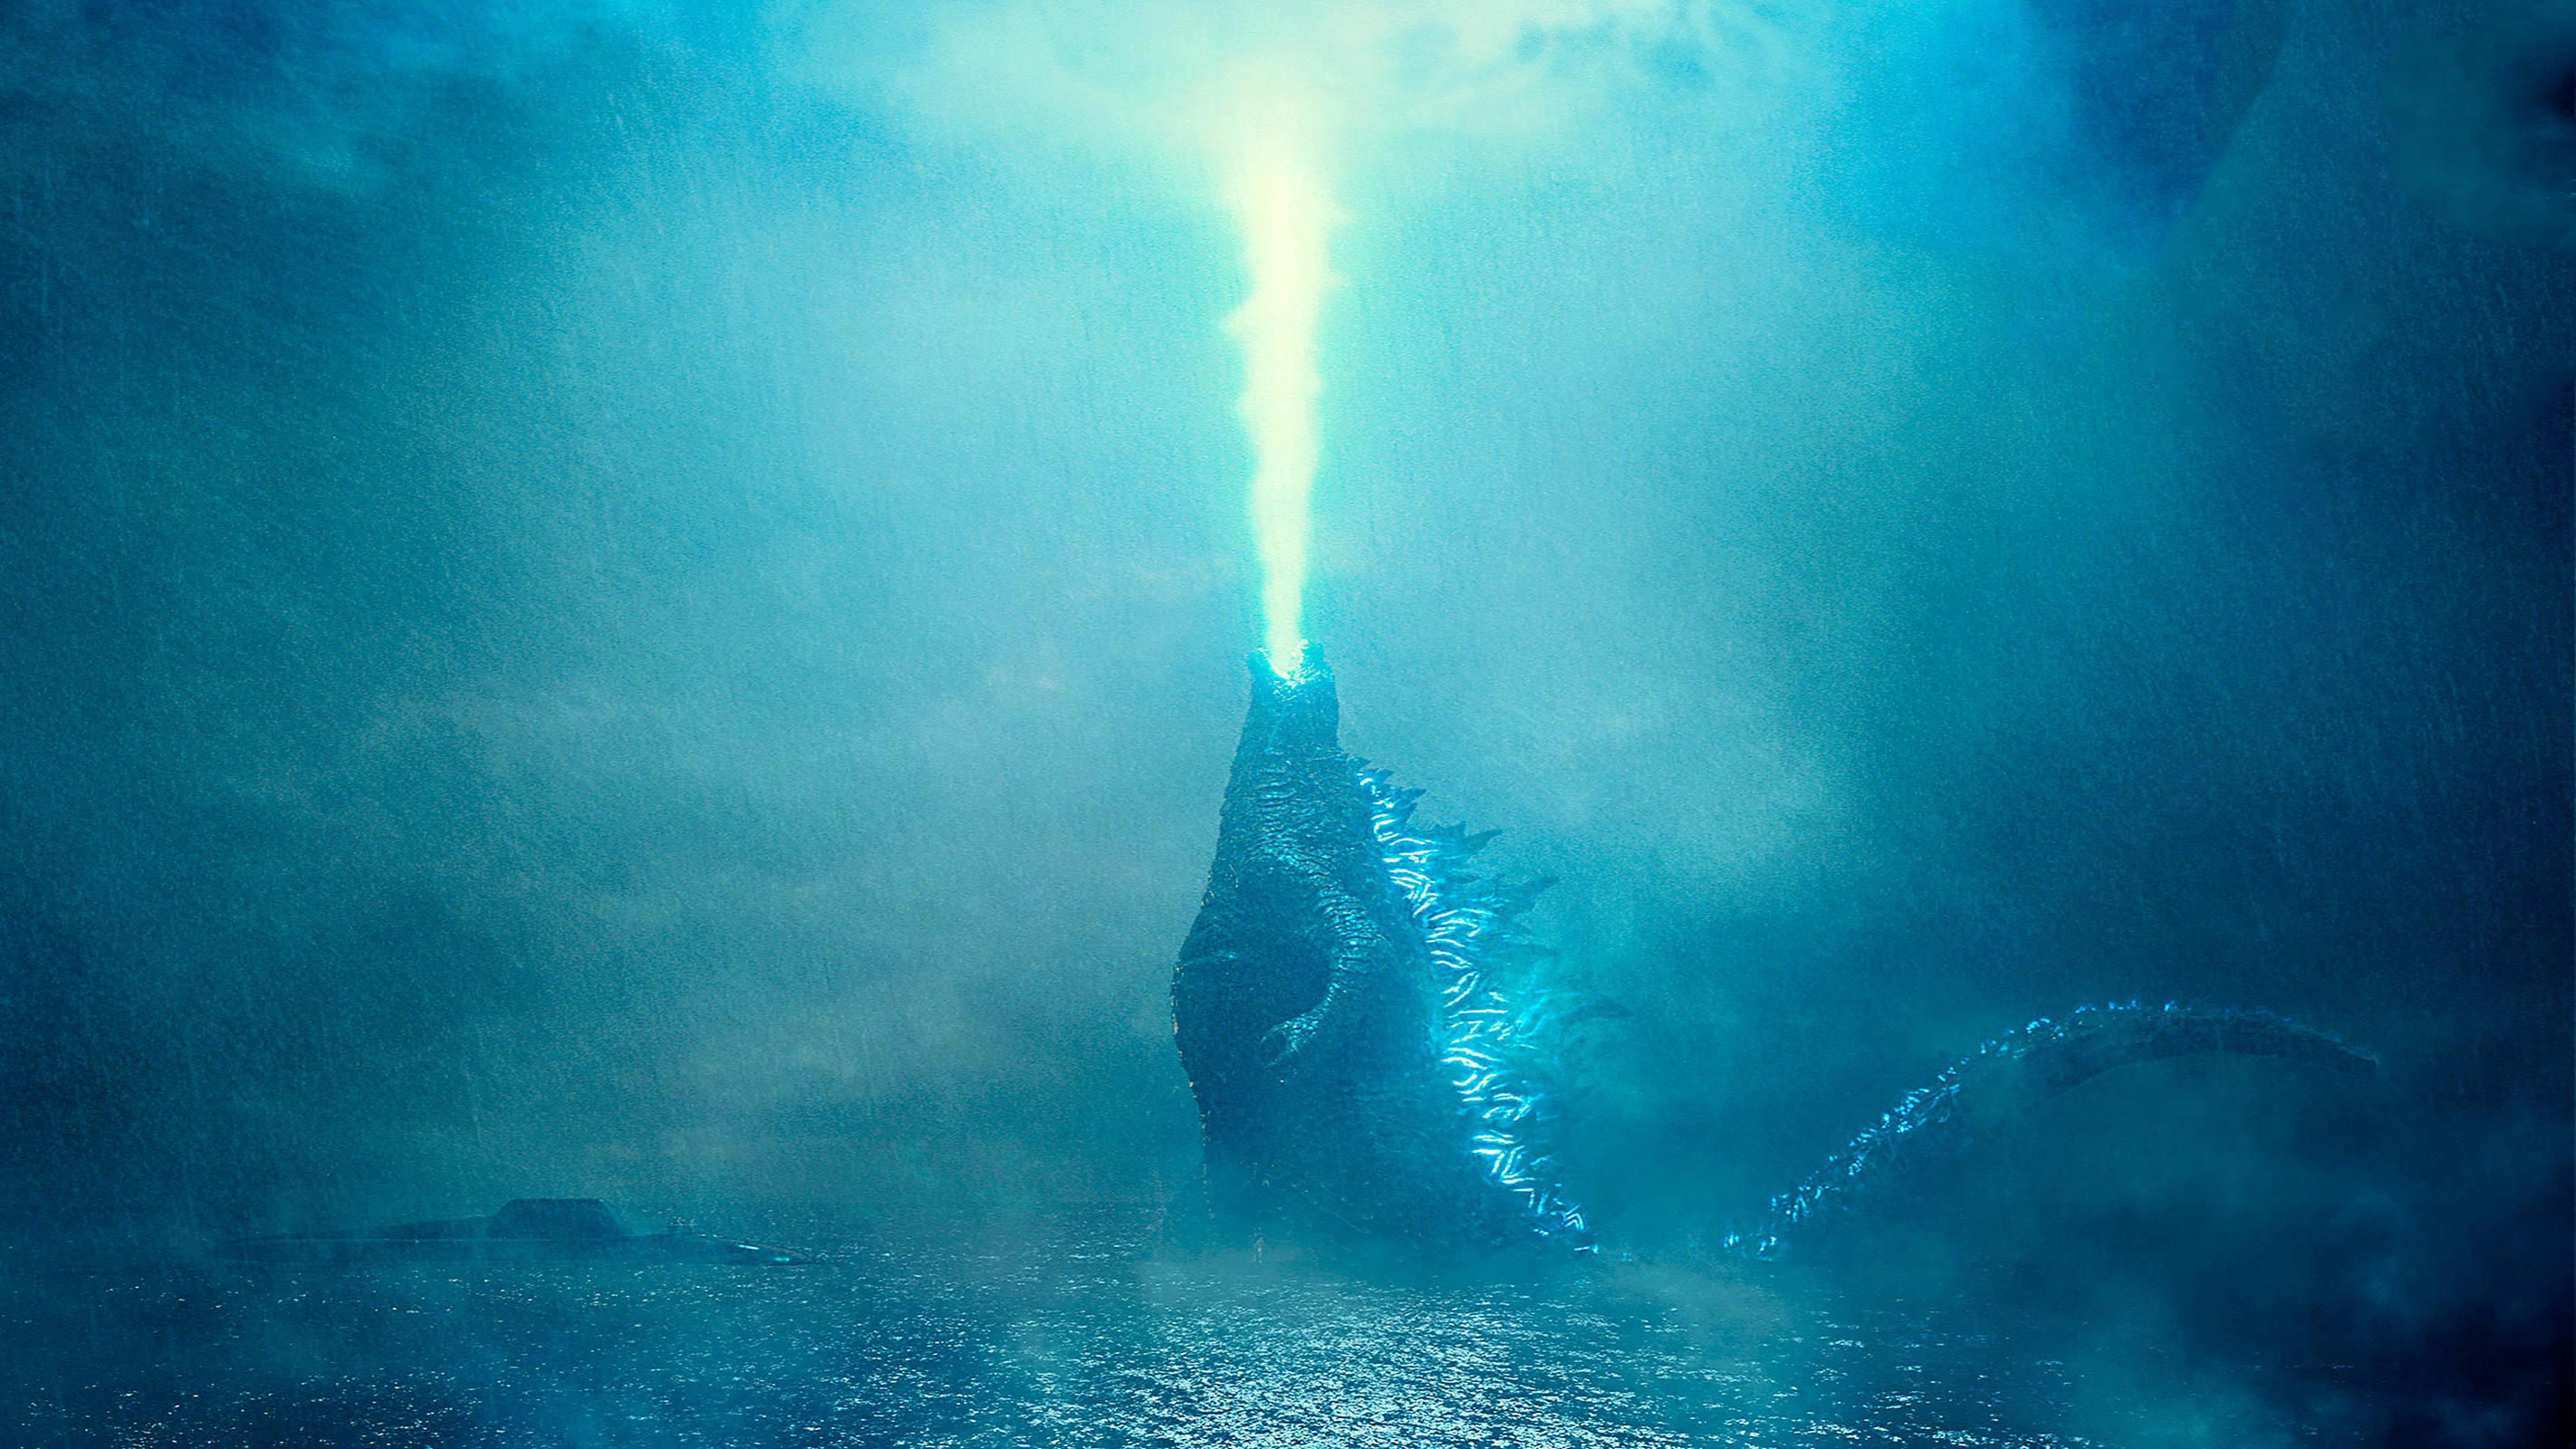 Godzilla King The Monsters 2019 HD Movies 4k Wallpapers